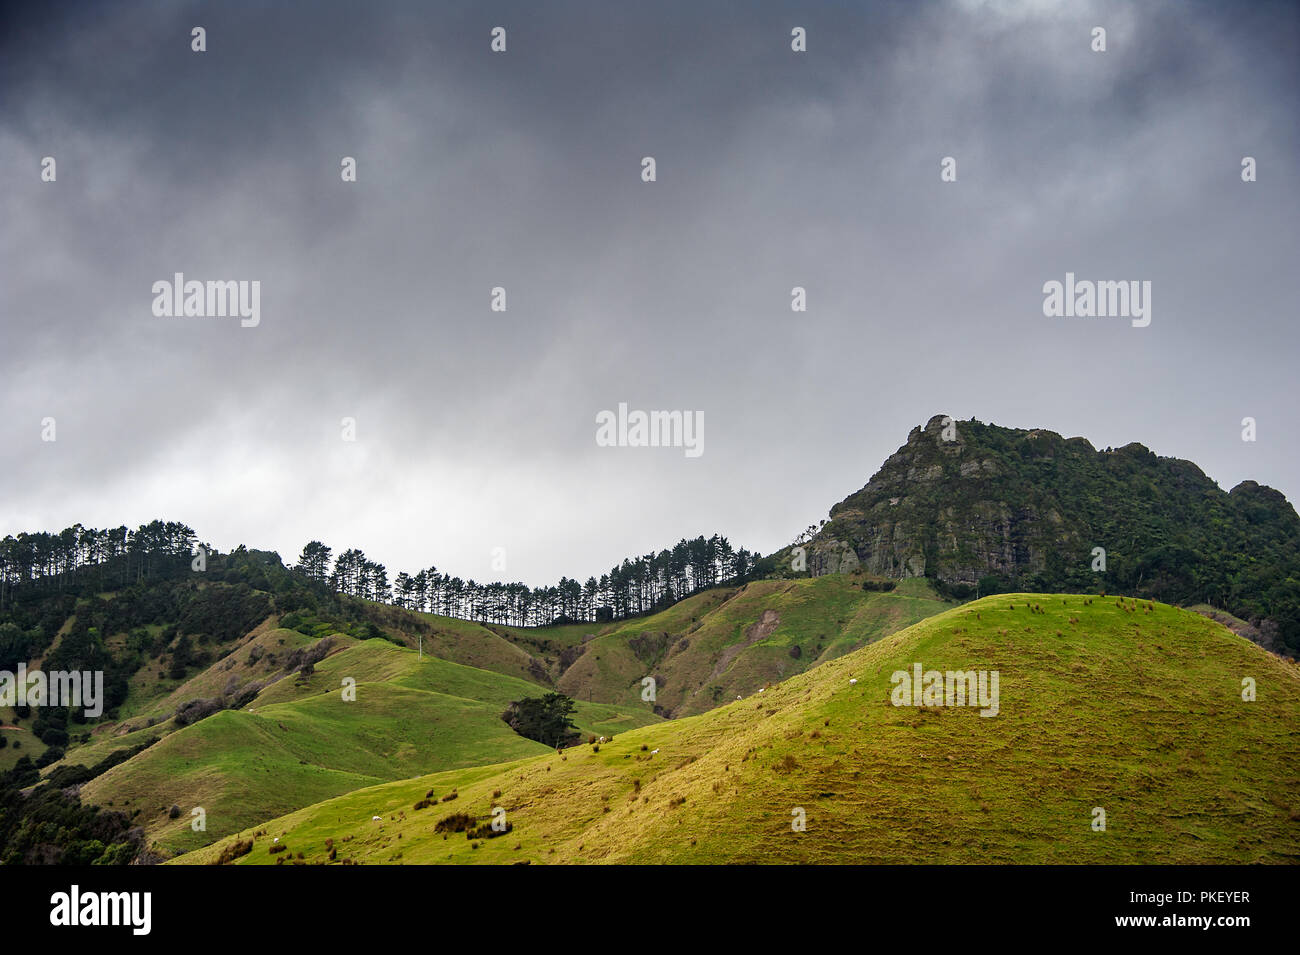 Rural scene on the Coromandel Peninsula, New Zealand. Green rolling hills, forested slopes, dark stormy sky - Stock Image